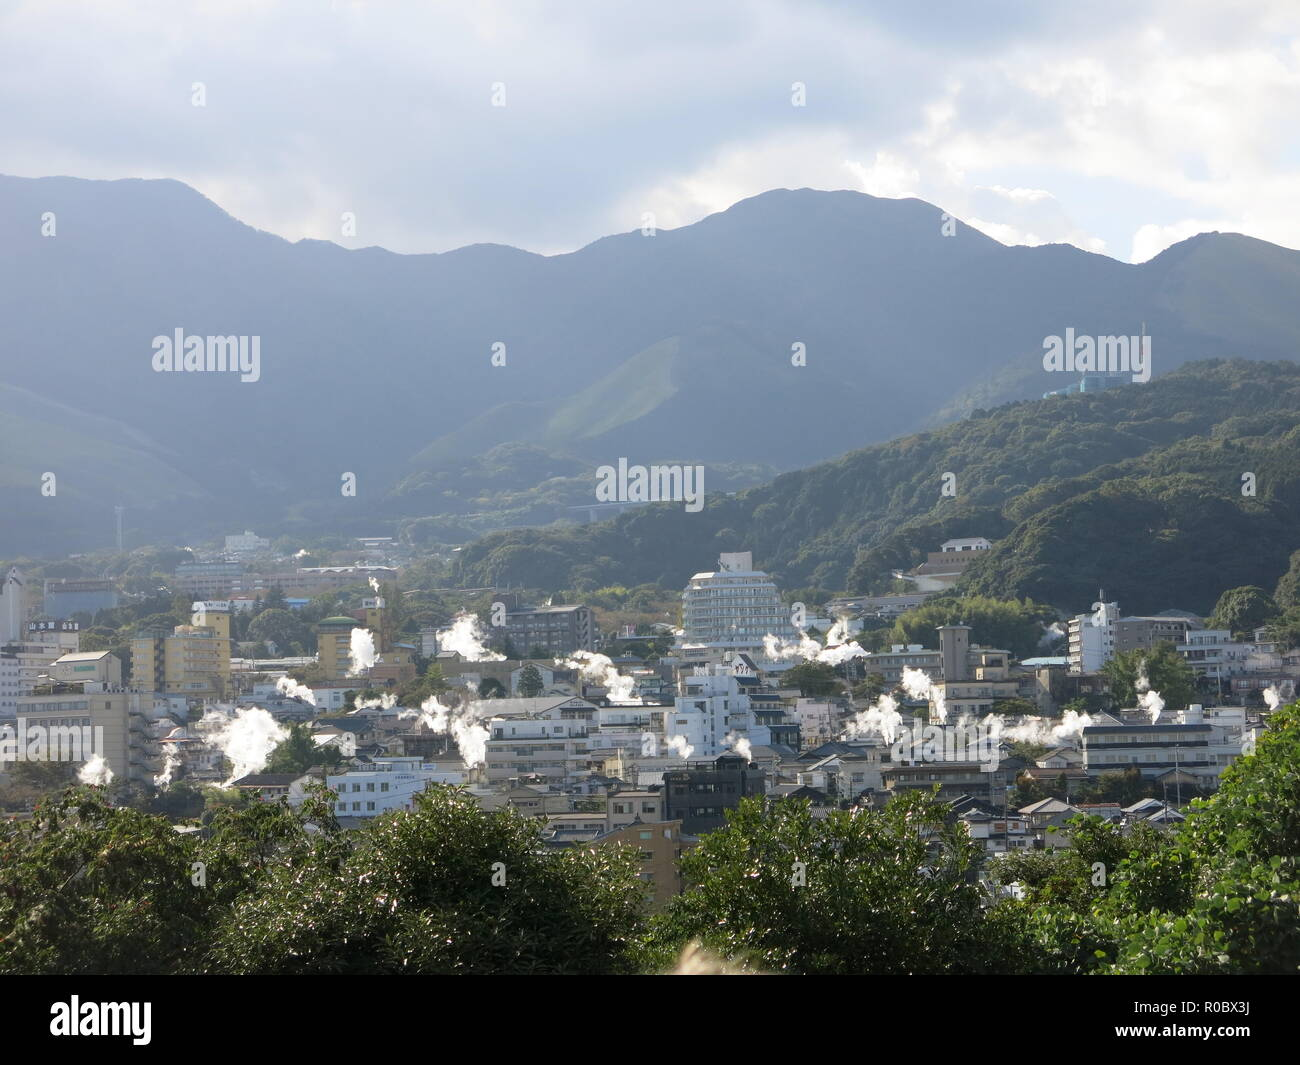 View of the city of Beppu where geothermal activity sends plumes of smoke and hot springs at the 'Eight Hells of Beppu'; Japan - Stock Image